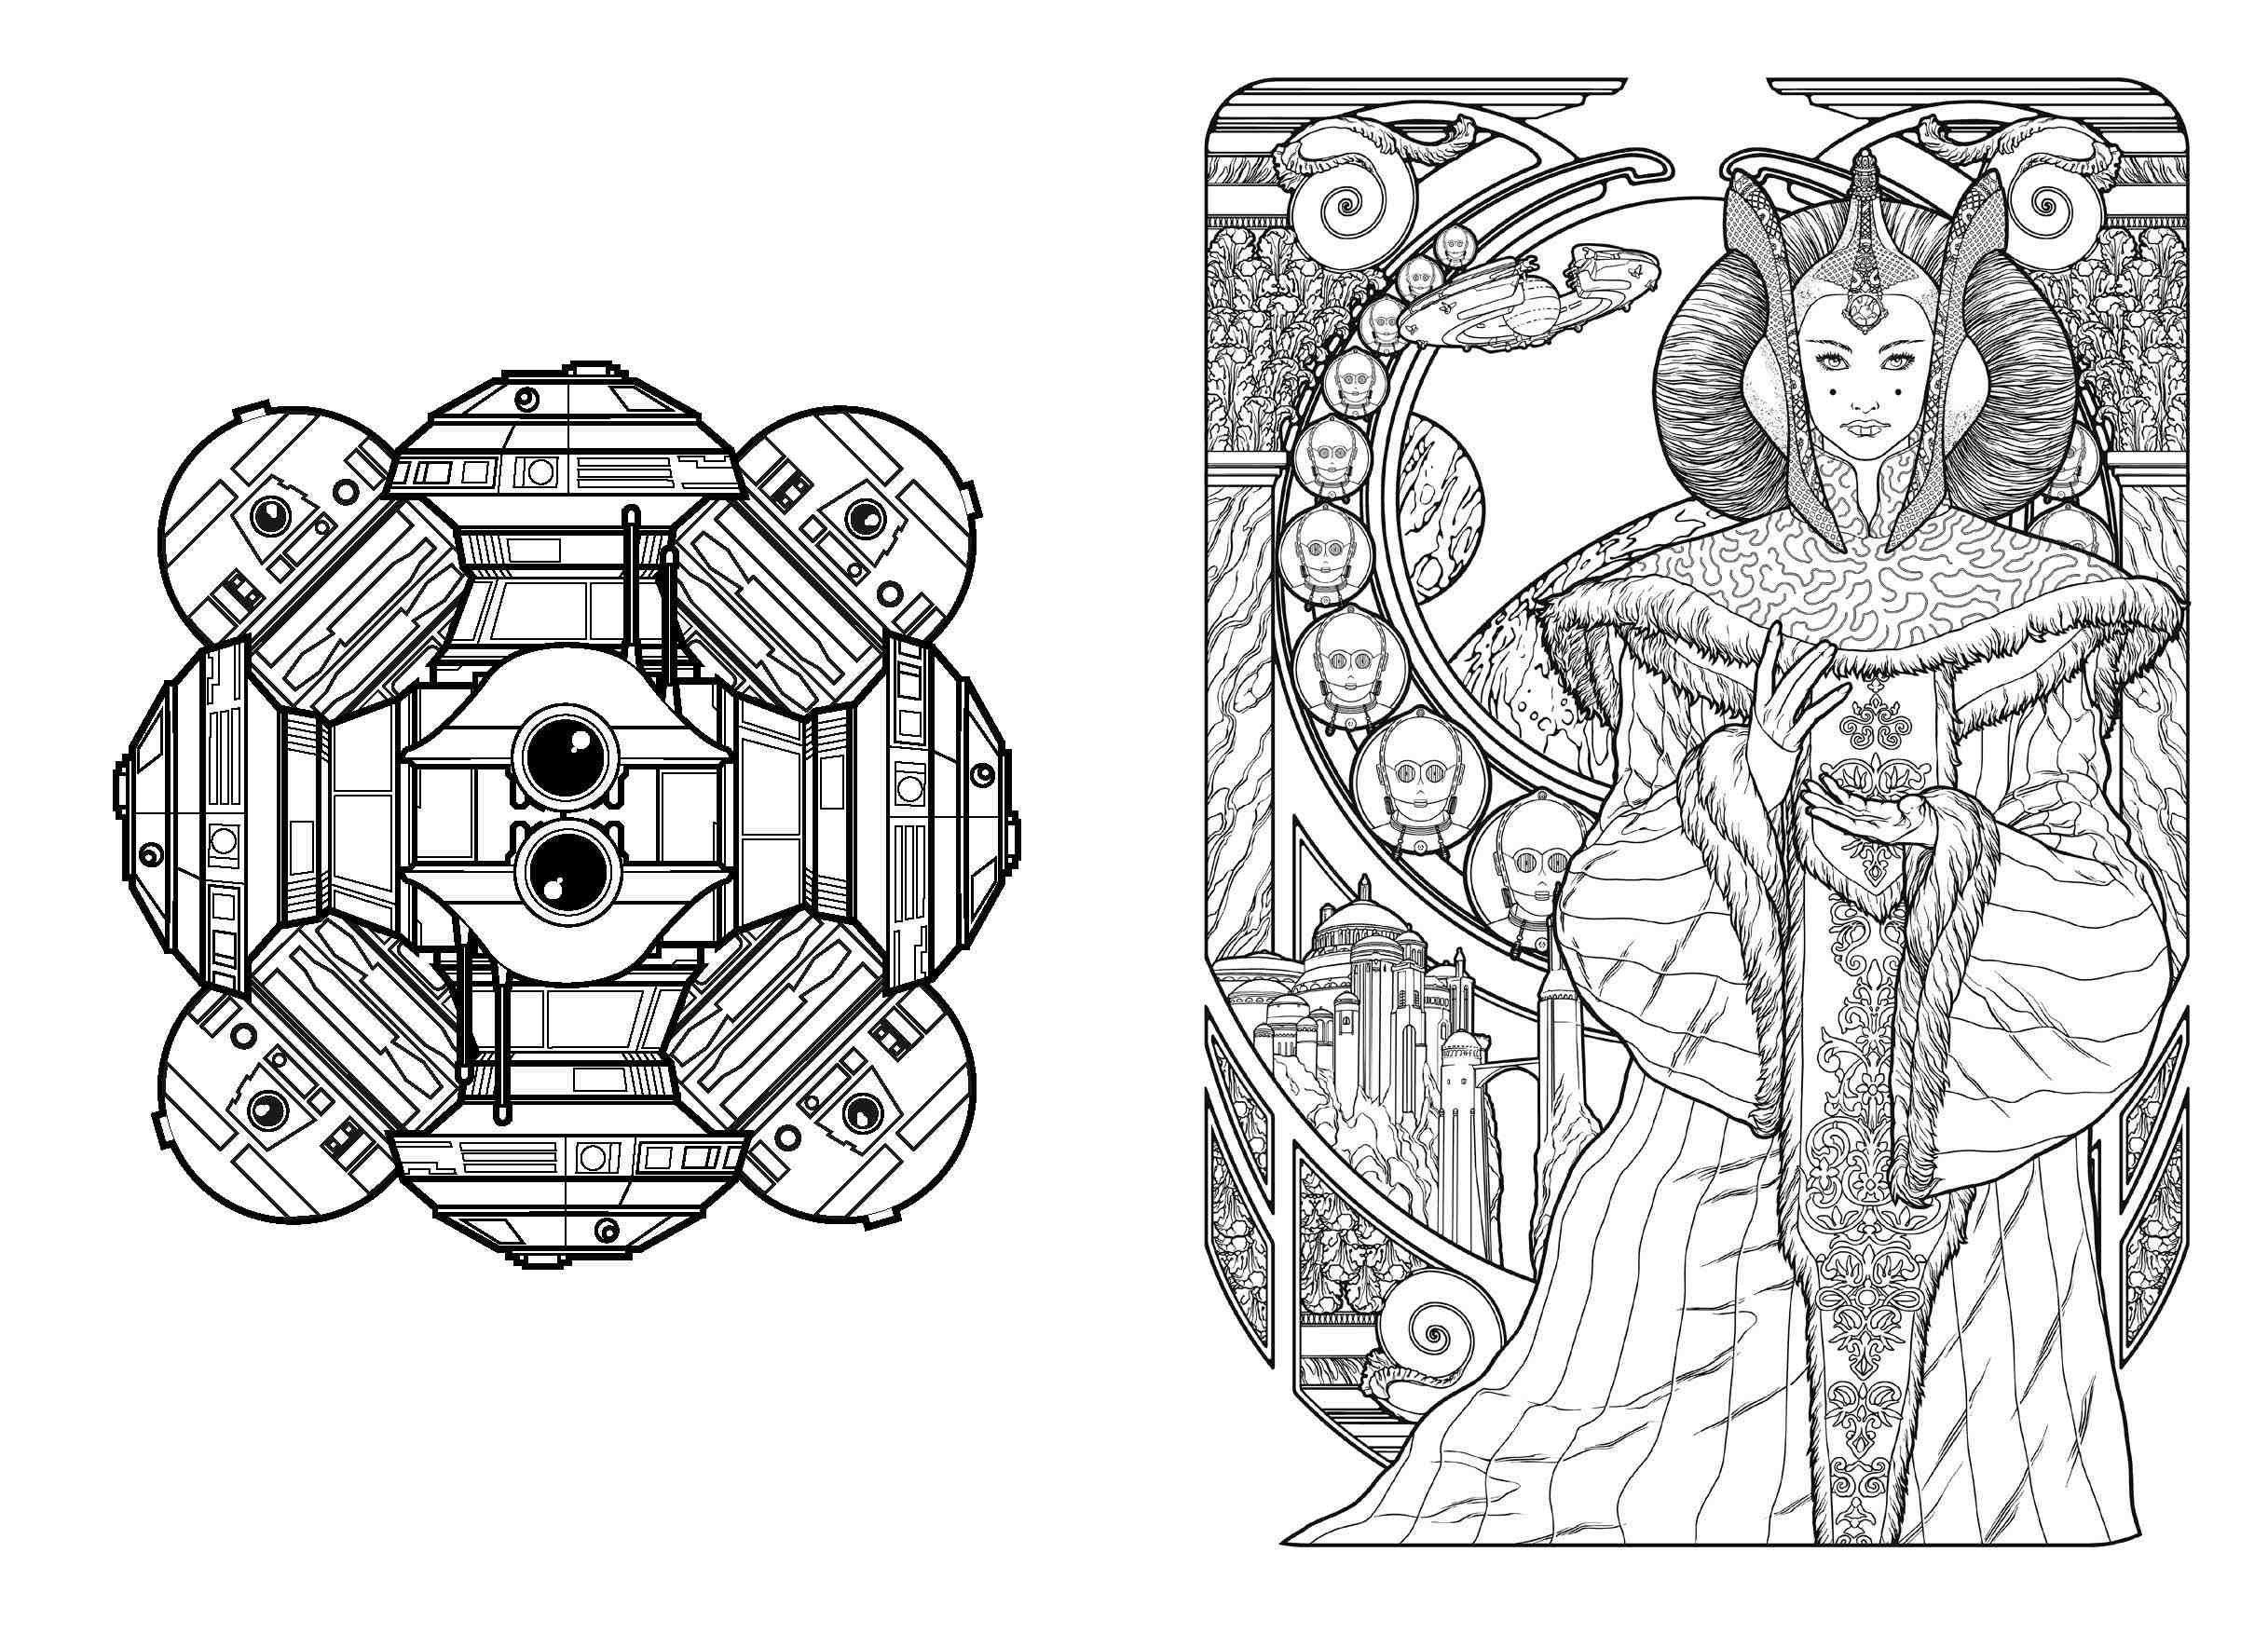 coloring pages star wars fashionably nerdy family star wars day may the fourth wars pages coloring star